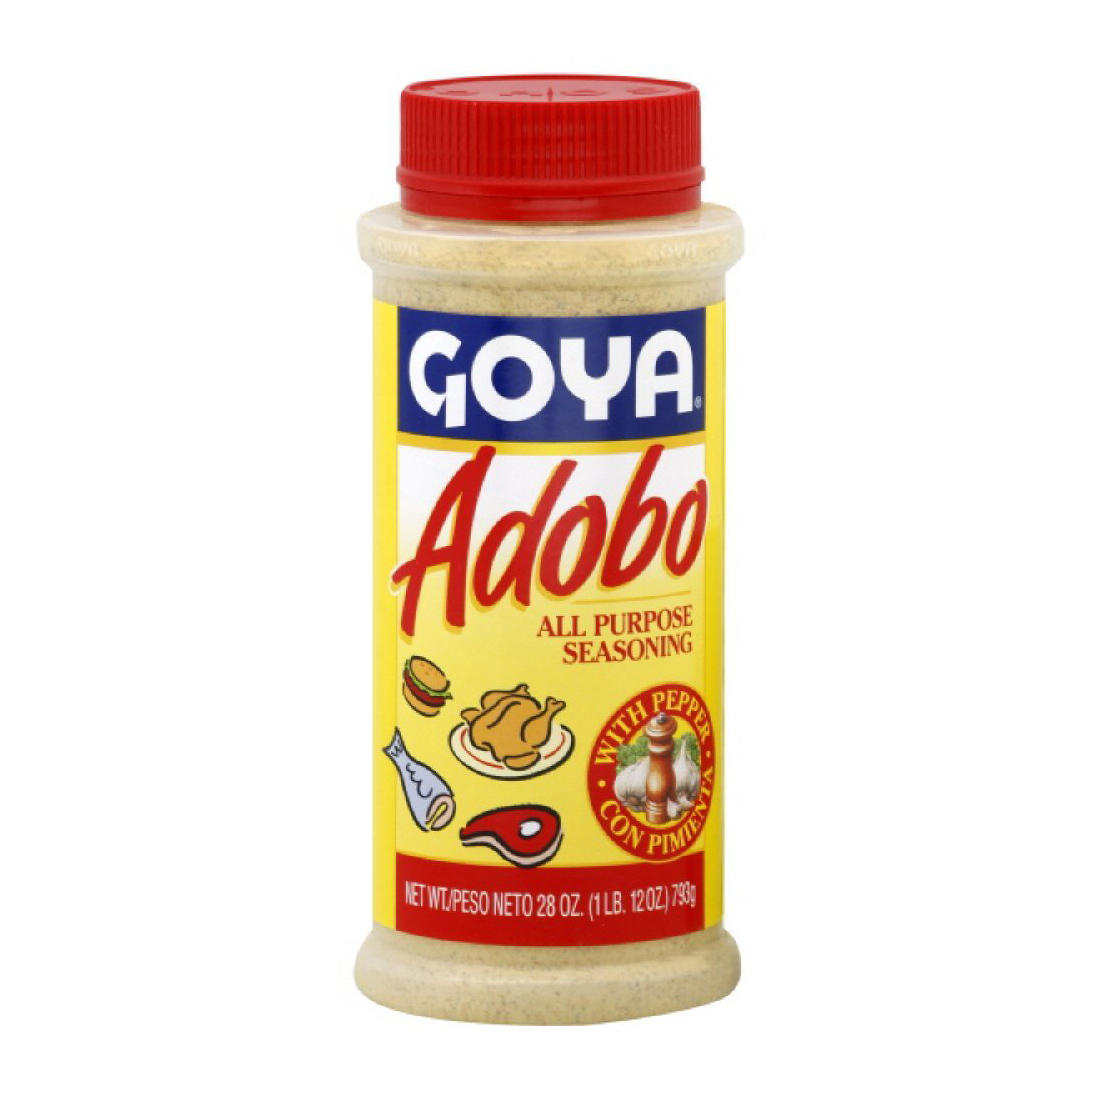 Goya Adobo Seasoning 28 Oz Bjs Wholesale Club